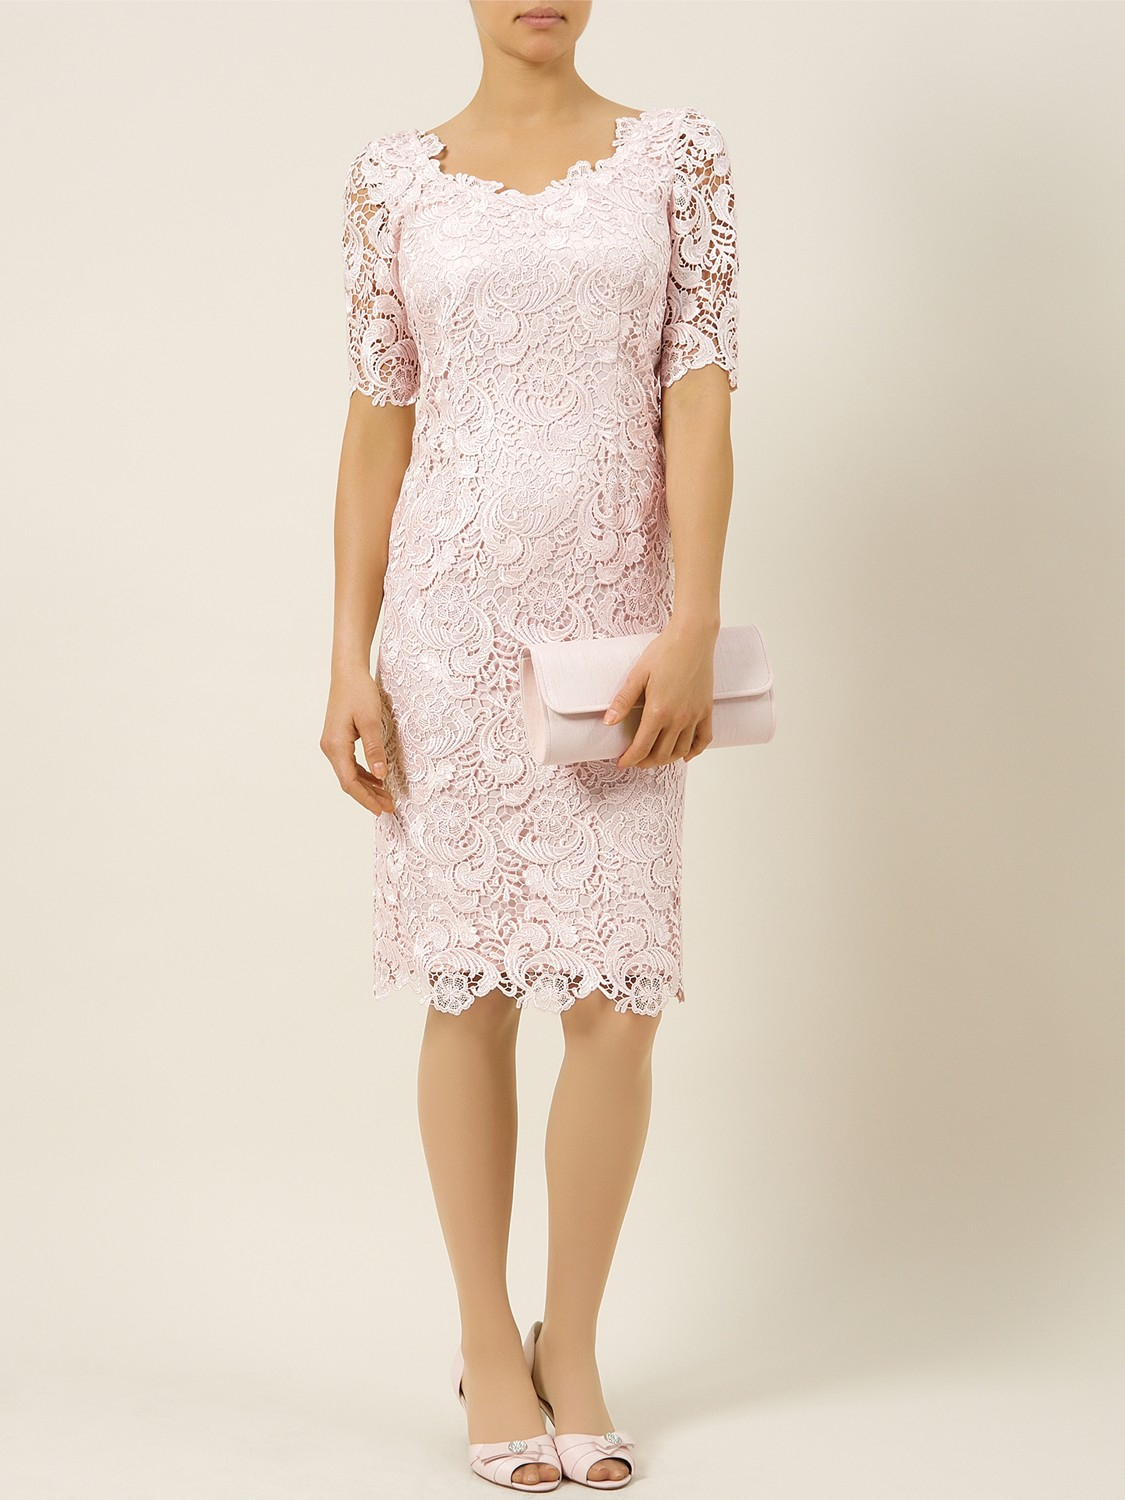 9341e428673fc Jacques Vert Luxury Lace Dress in Natural - Lyst